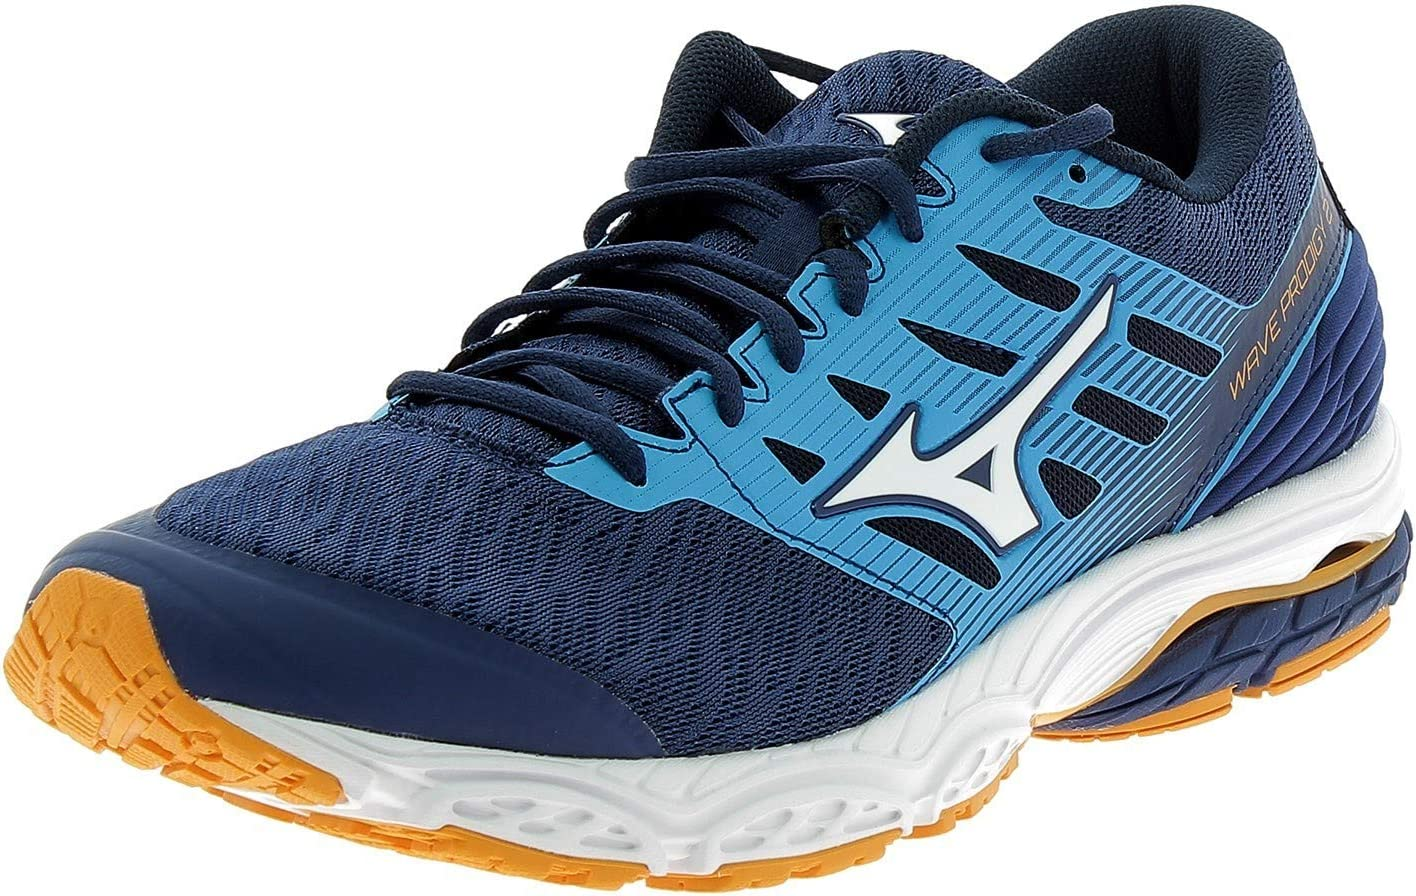 Mizuno Mens Wave Prodigy 2 Running Shoes Trainers Sneakers Blue Sports